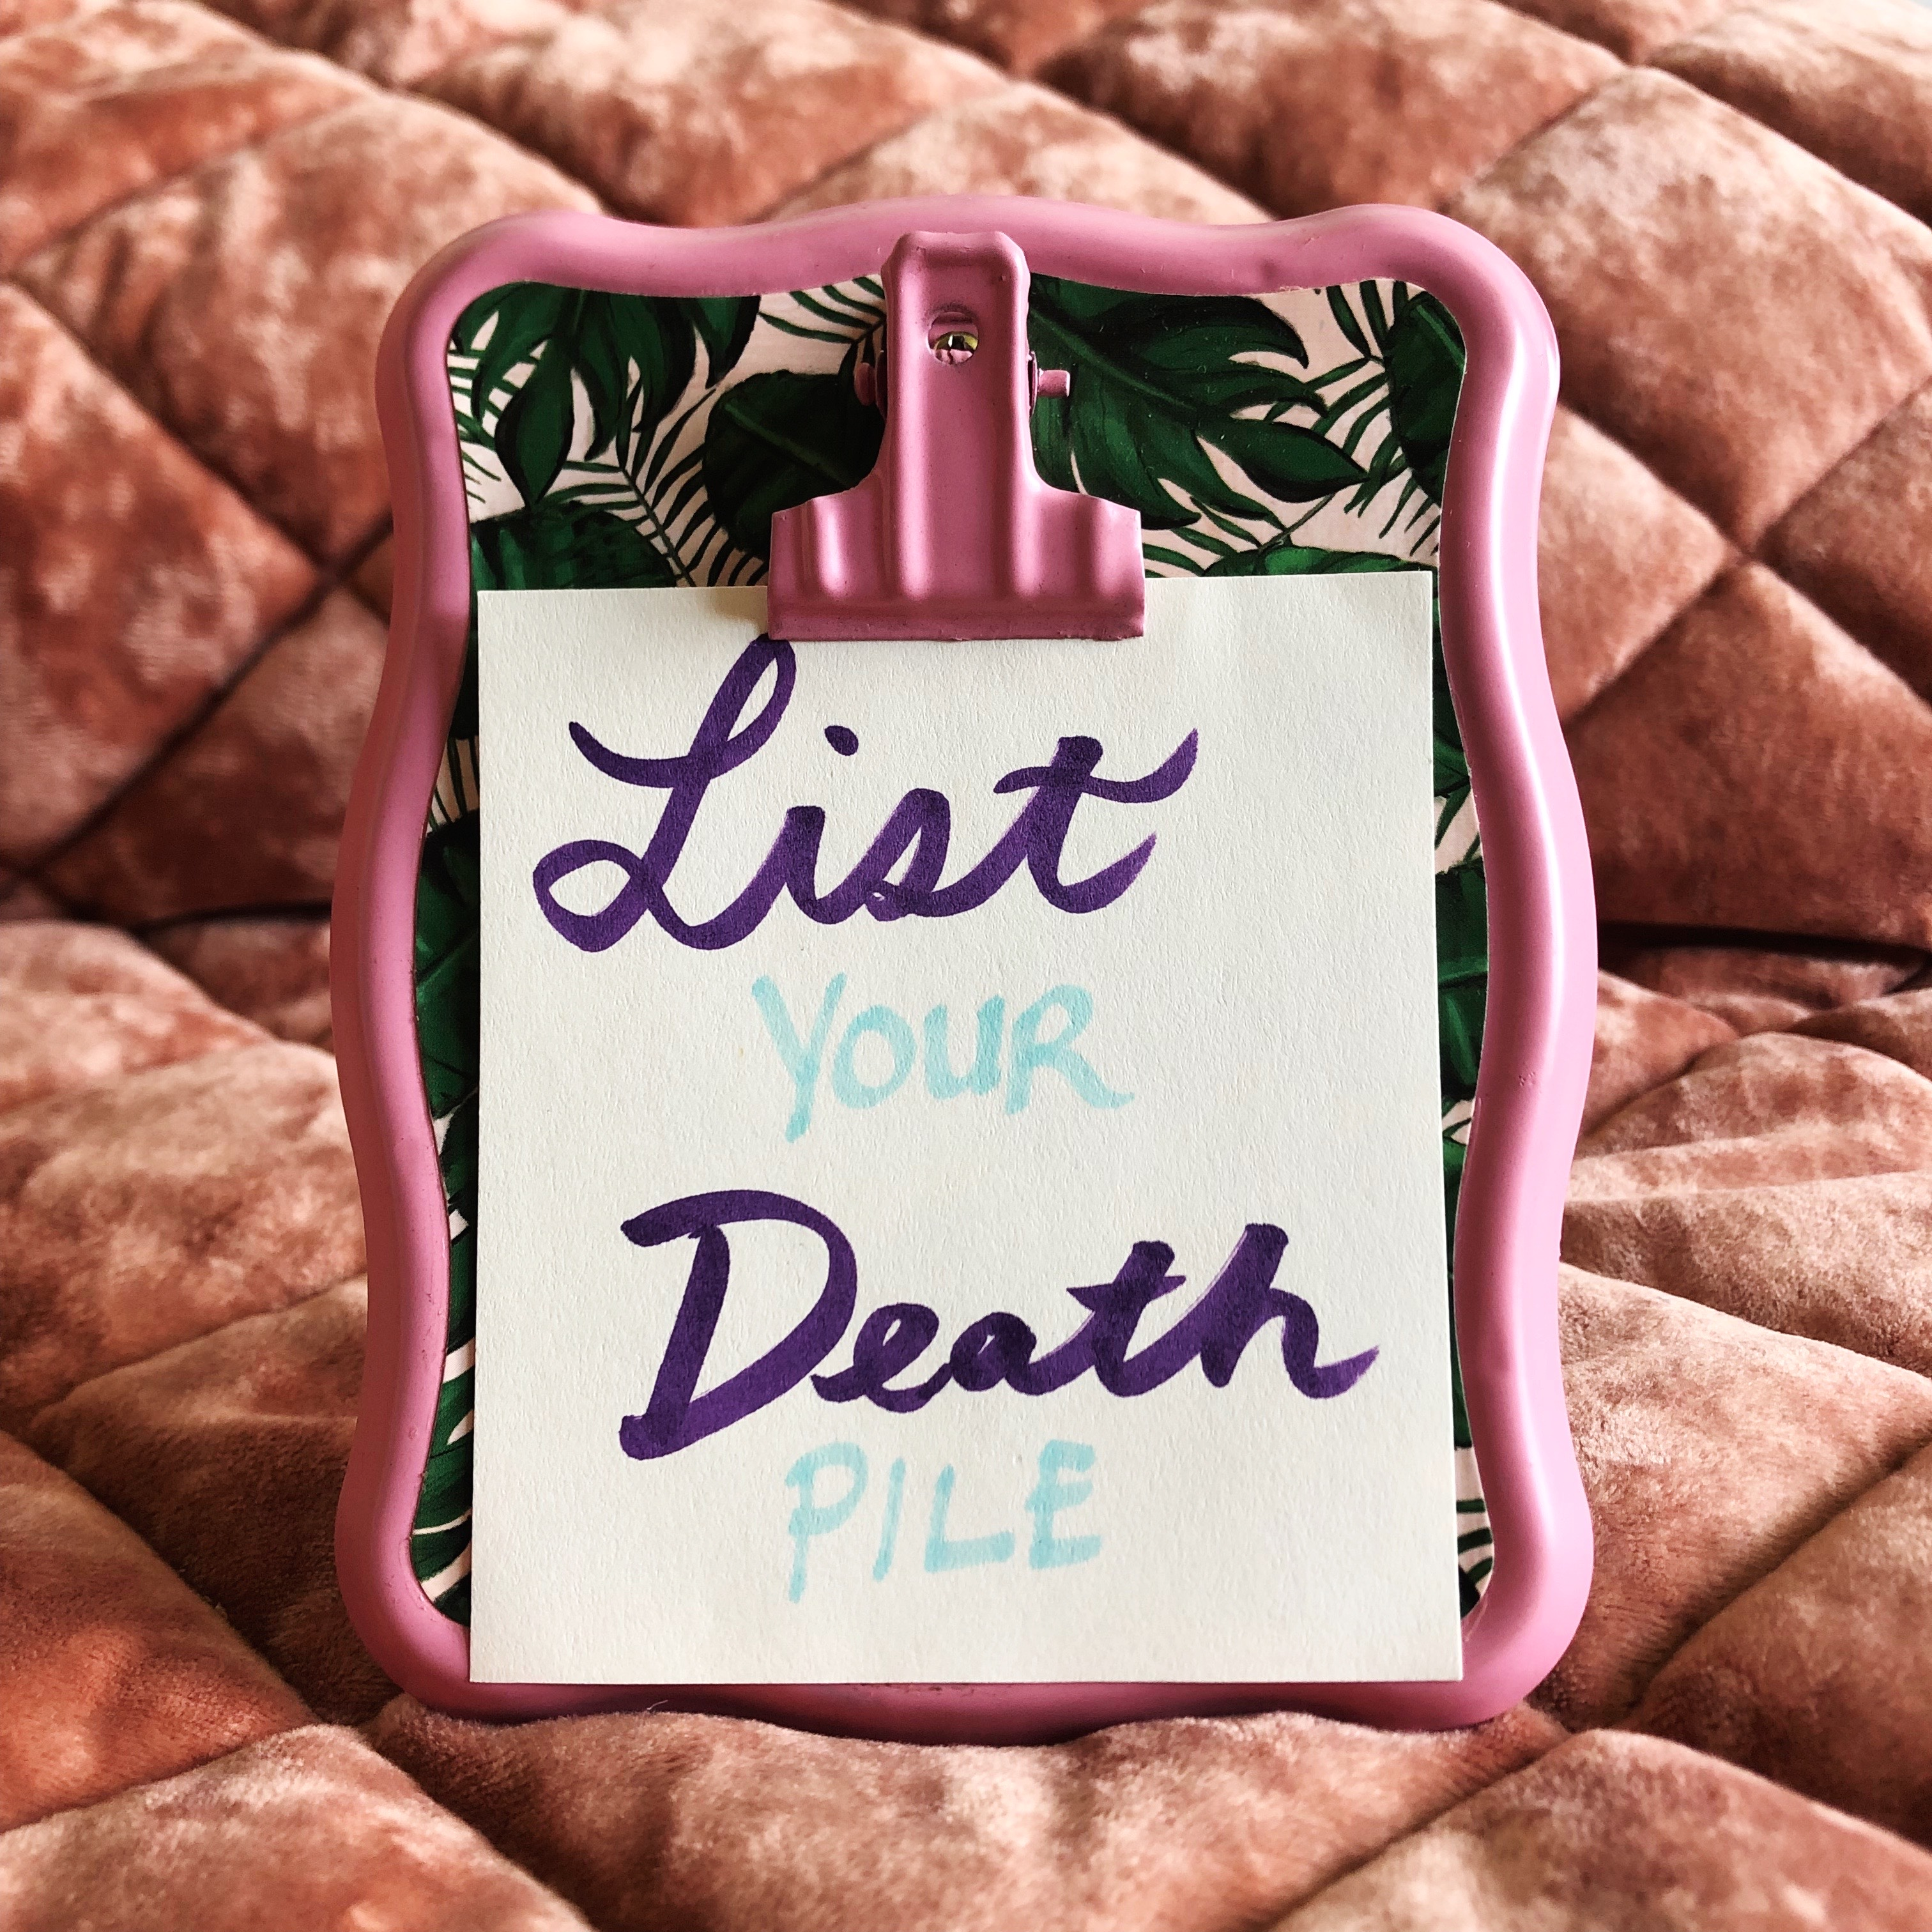 Reseller Tips 3 • List Your Death Pile